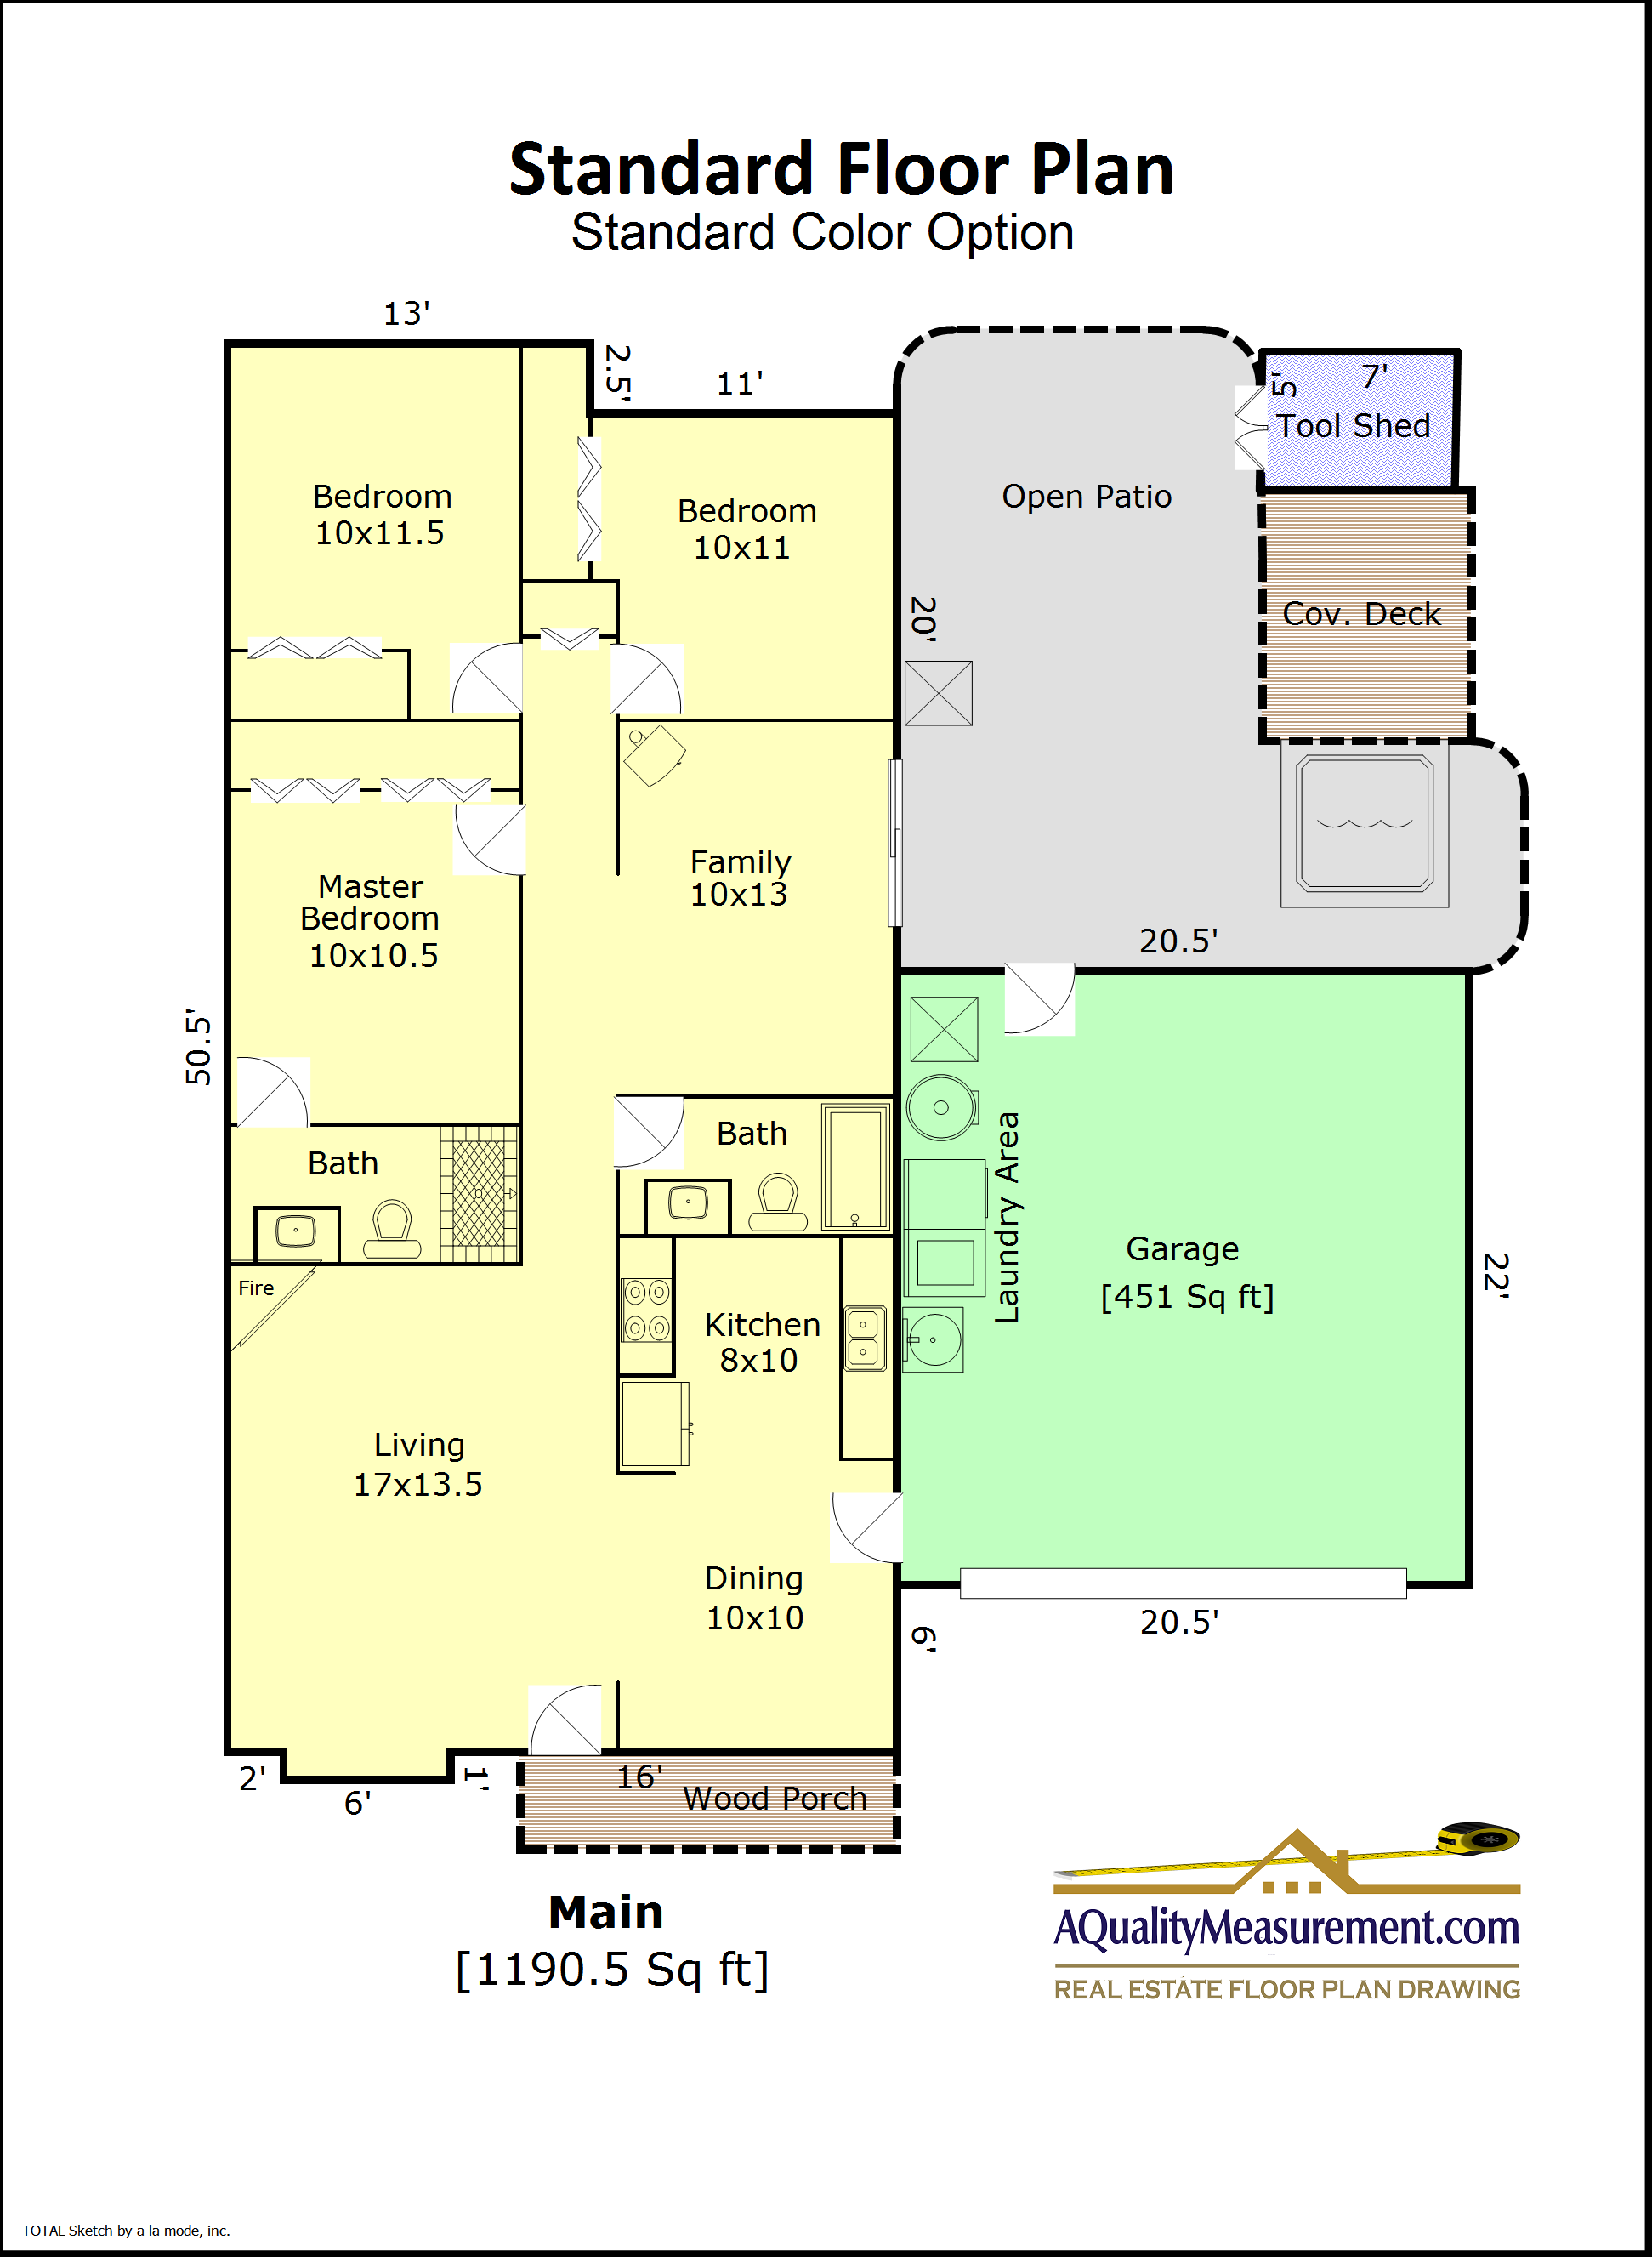 Portland home energy scores floor plans a quality for Standard house plans free